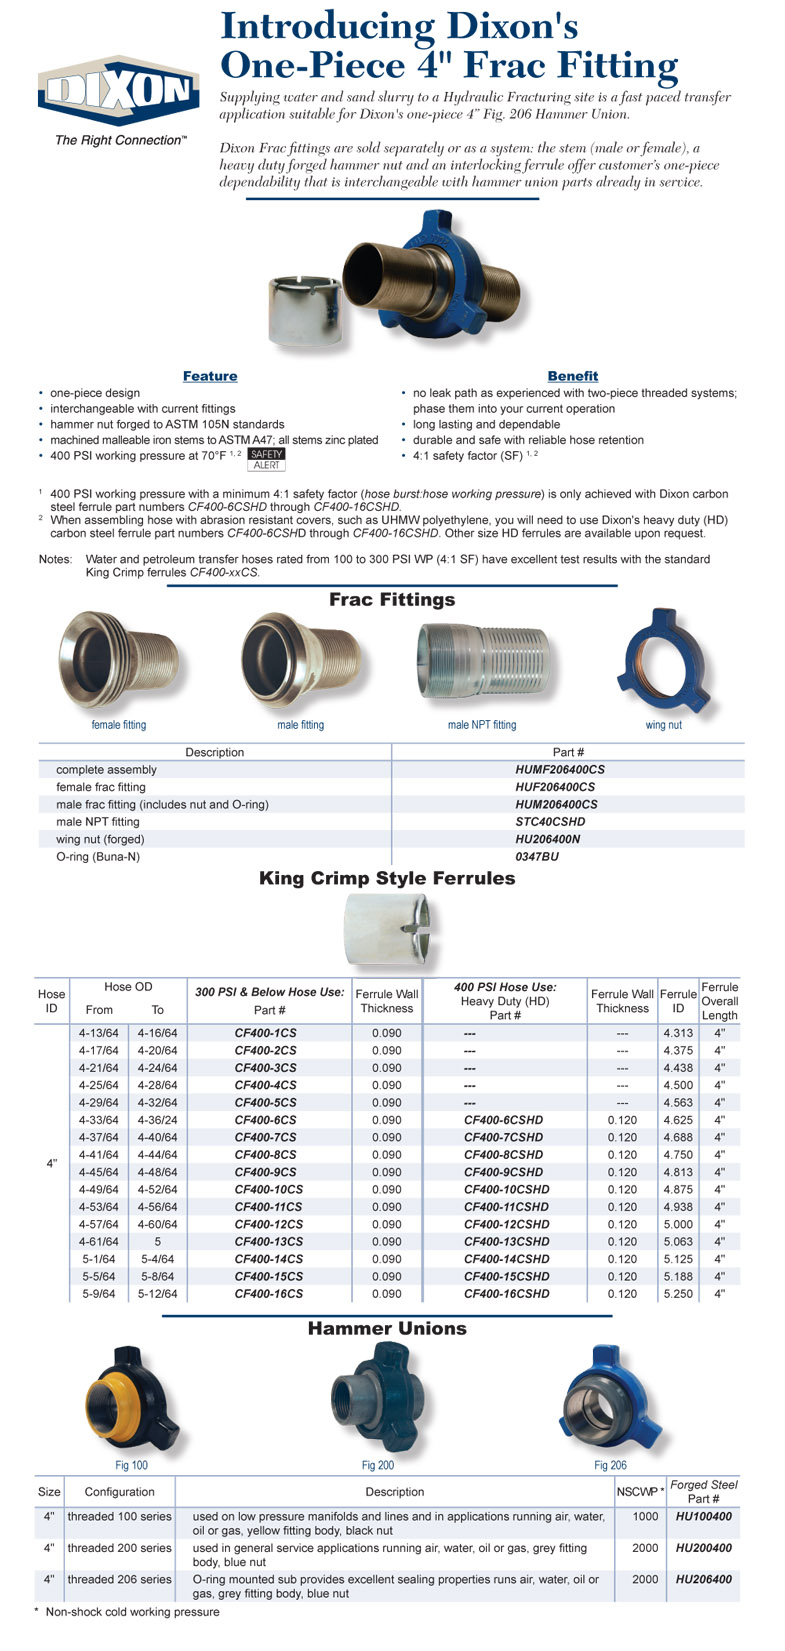 Dixon Frac fittings